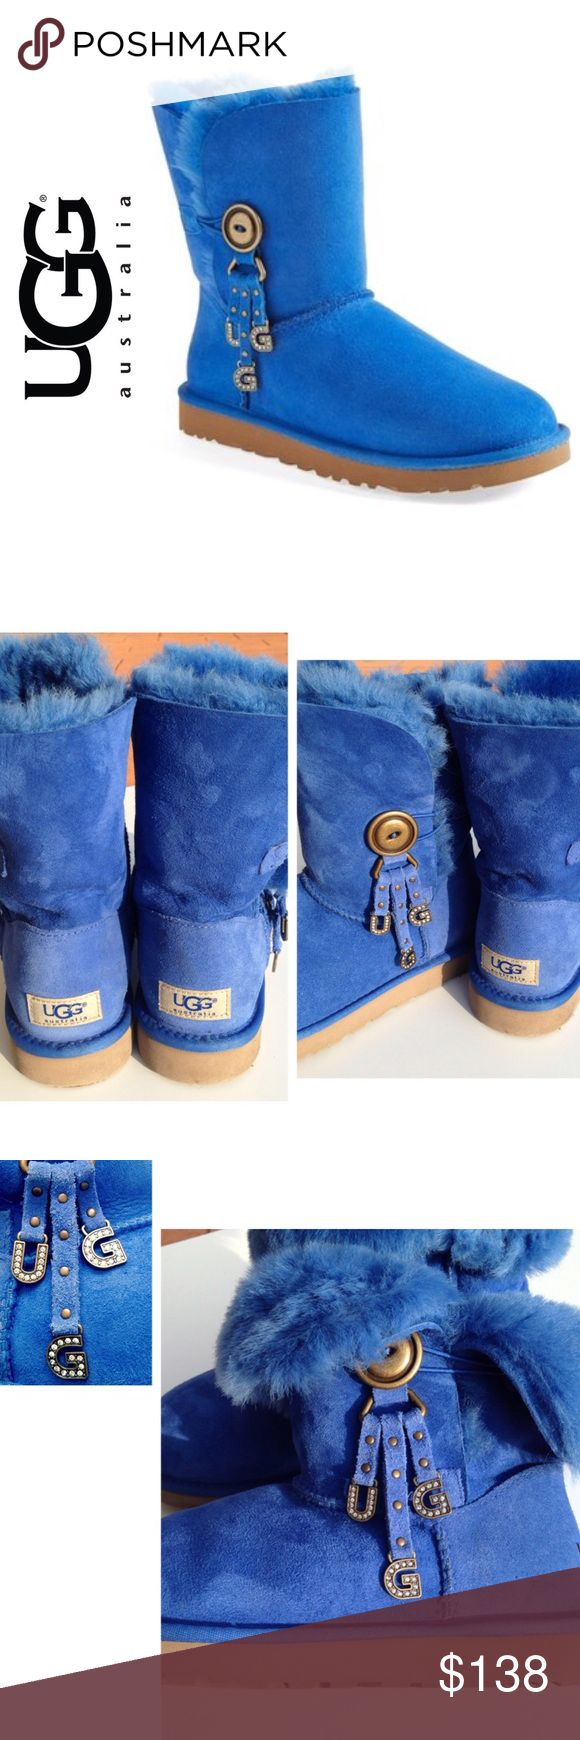 "Ugg Australia Azalea Charm Boots Size 7 (These run a little larger than std US Sizes. Will fit between 7 - 7 1/2) Worn just a handful of times. In excellent used condition!   Soles are slightly dirty (see pics) **Does not include box**  Description: Short boot with dangling charms and a buttoned shaft that can be cuffed for a cute variation on the look.  * 7 1/2"" boot shaft height. * Single button-and-loop closure. * Twinface sheepskin upper/genuine shearling or UGGpure™ wool lining/EVA…"